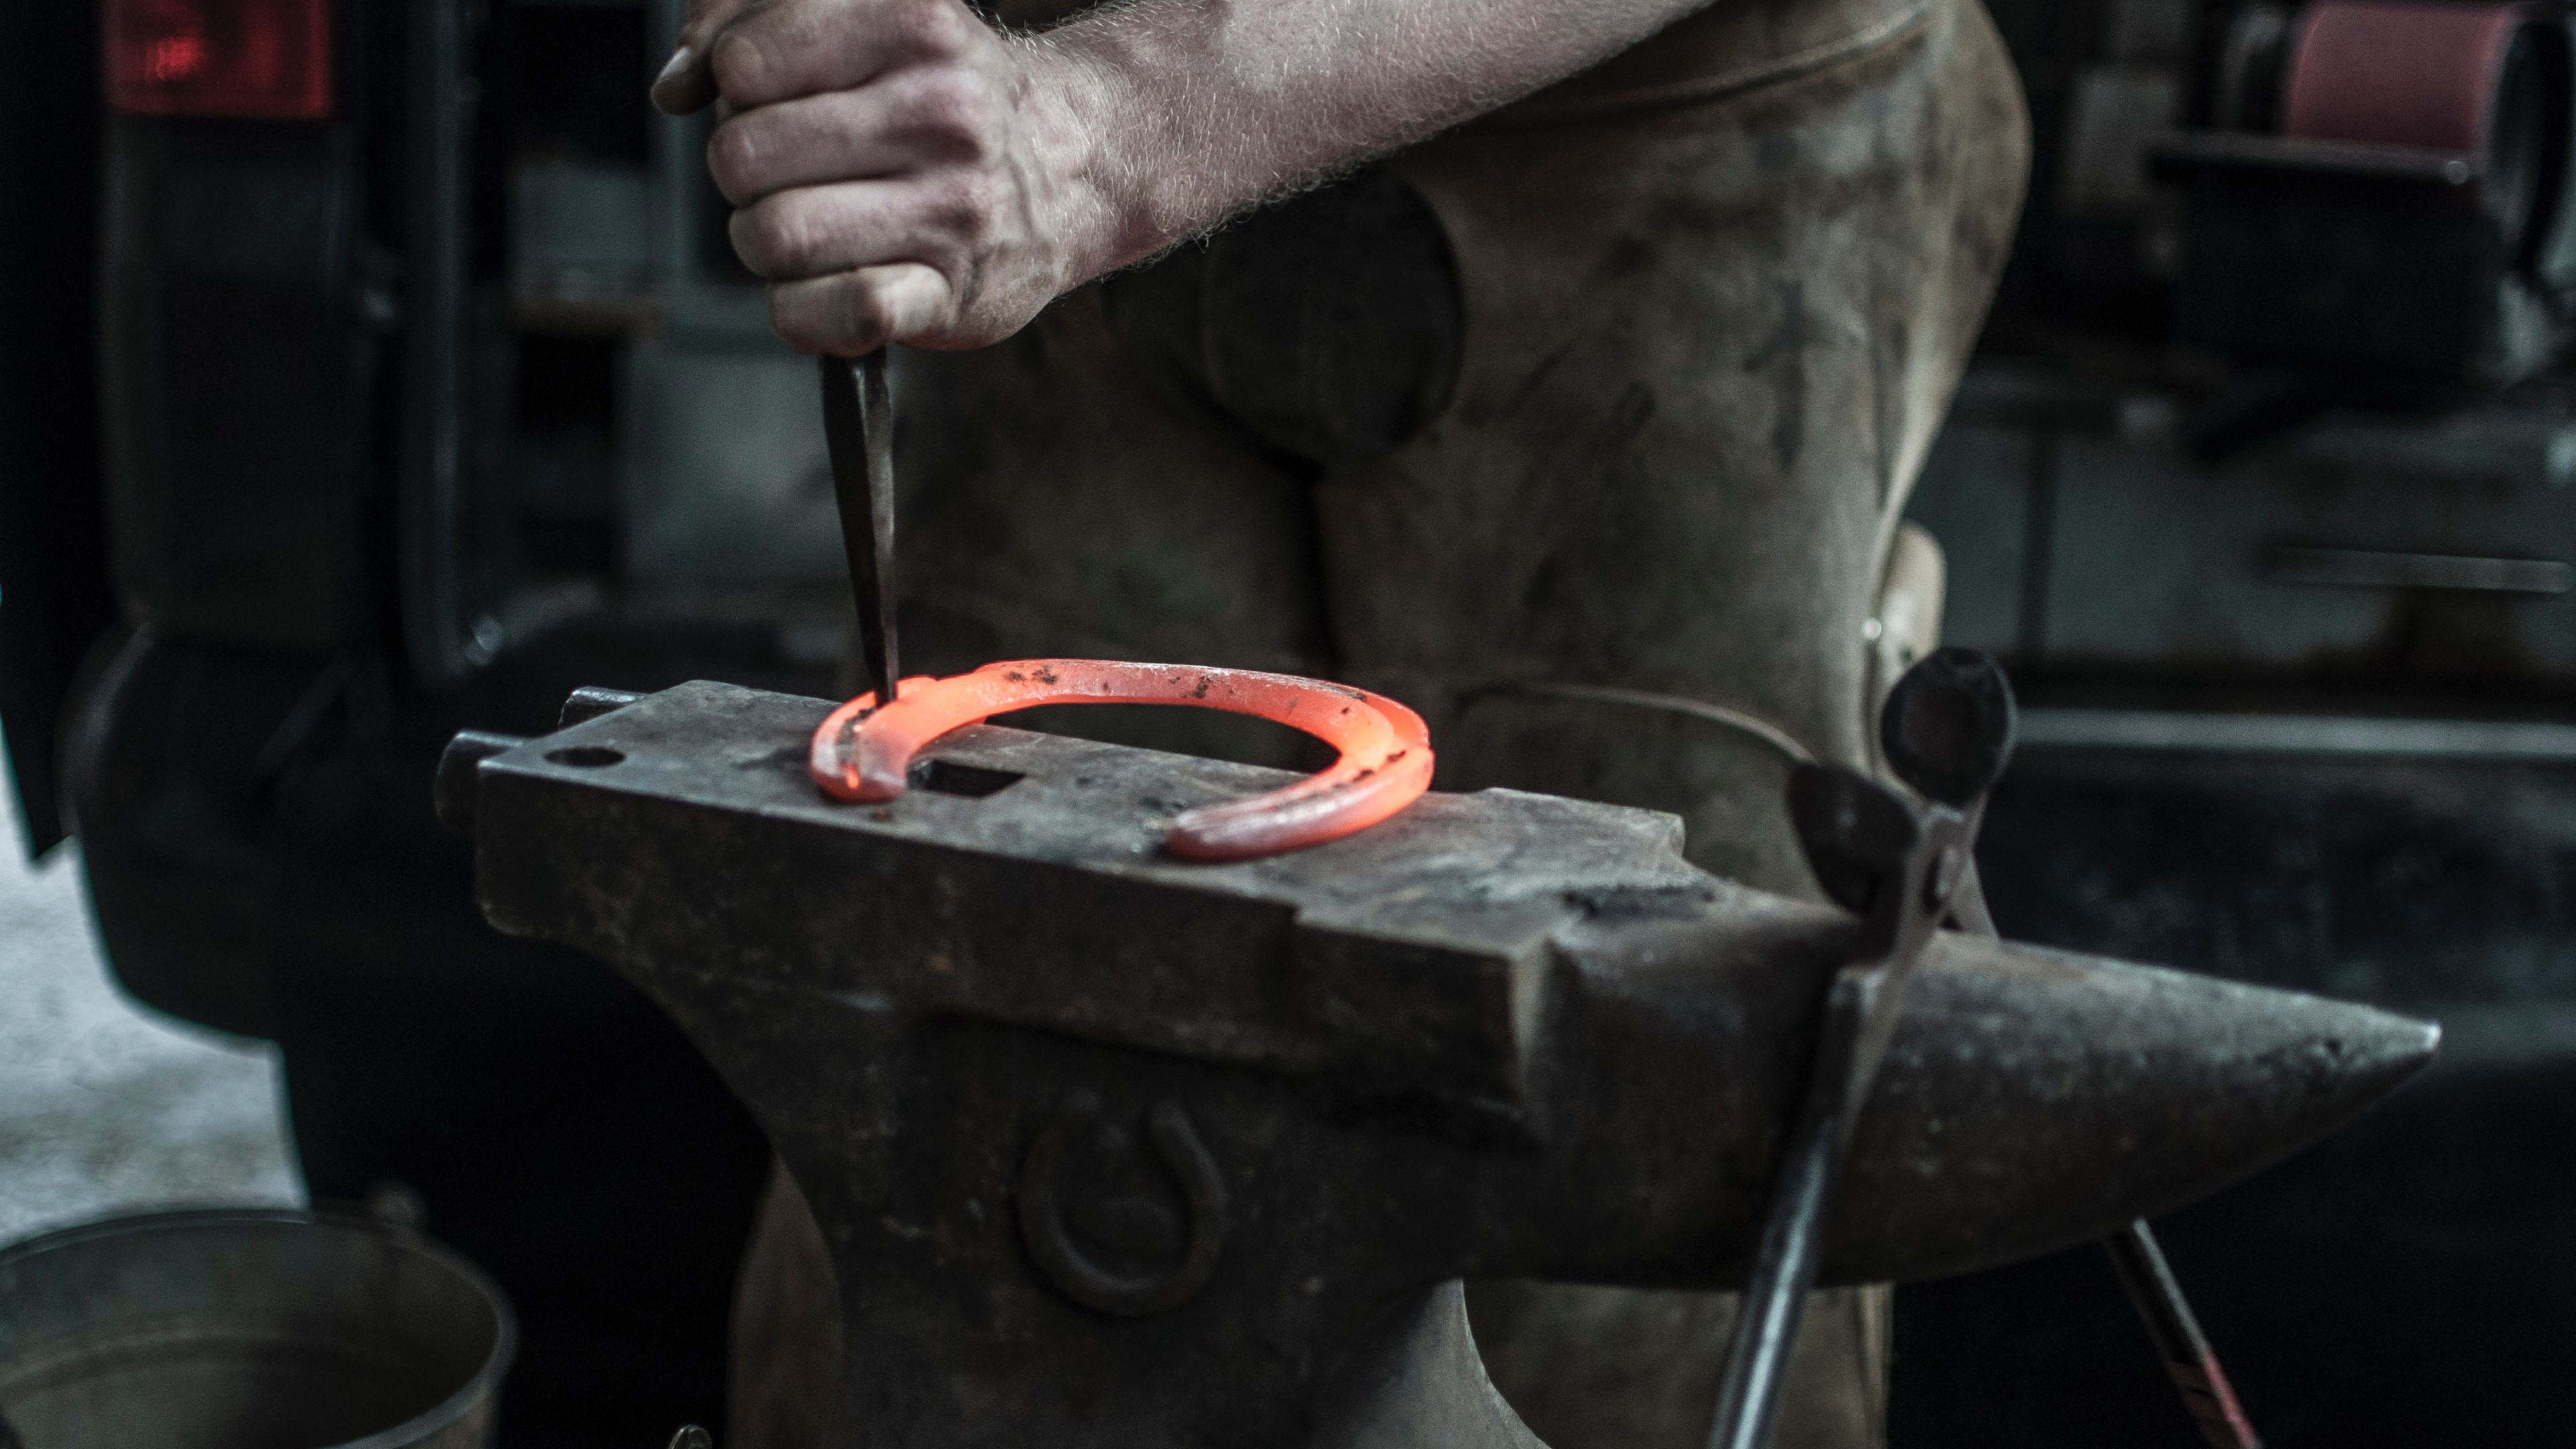 Blacksmith doing a Horseshoe | 3840x2160 wallpaper